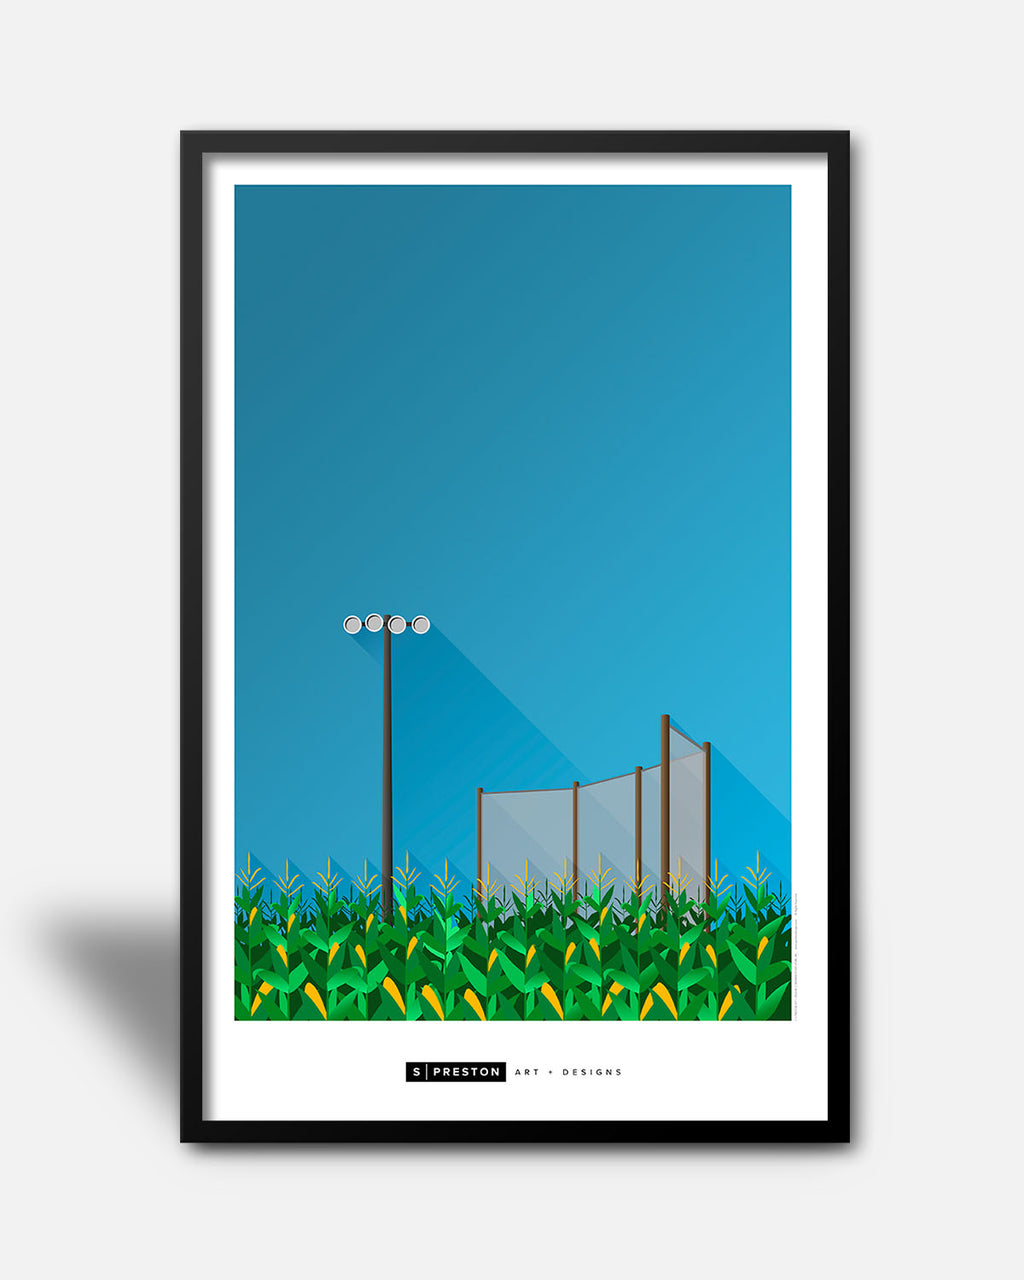 Minimalist Field Of Dreams Park Art Poster